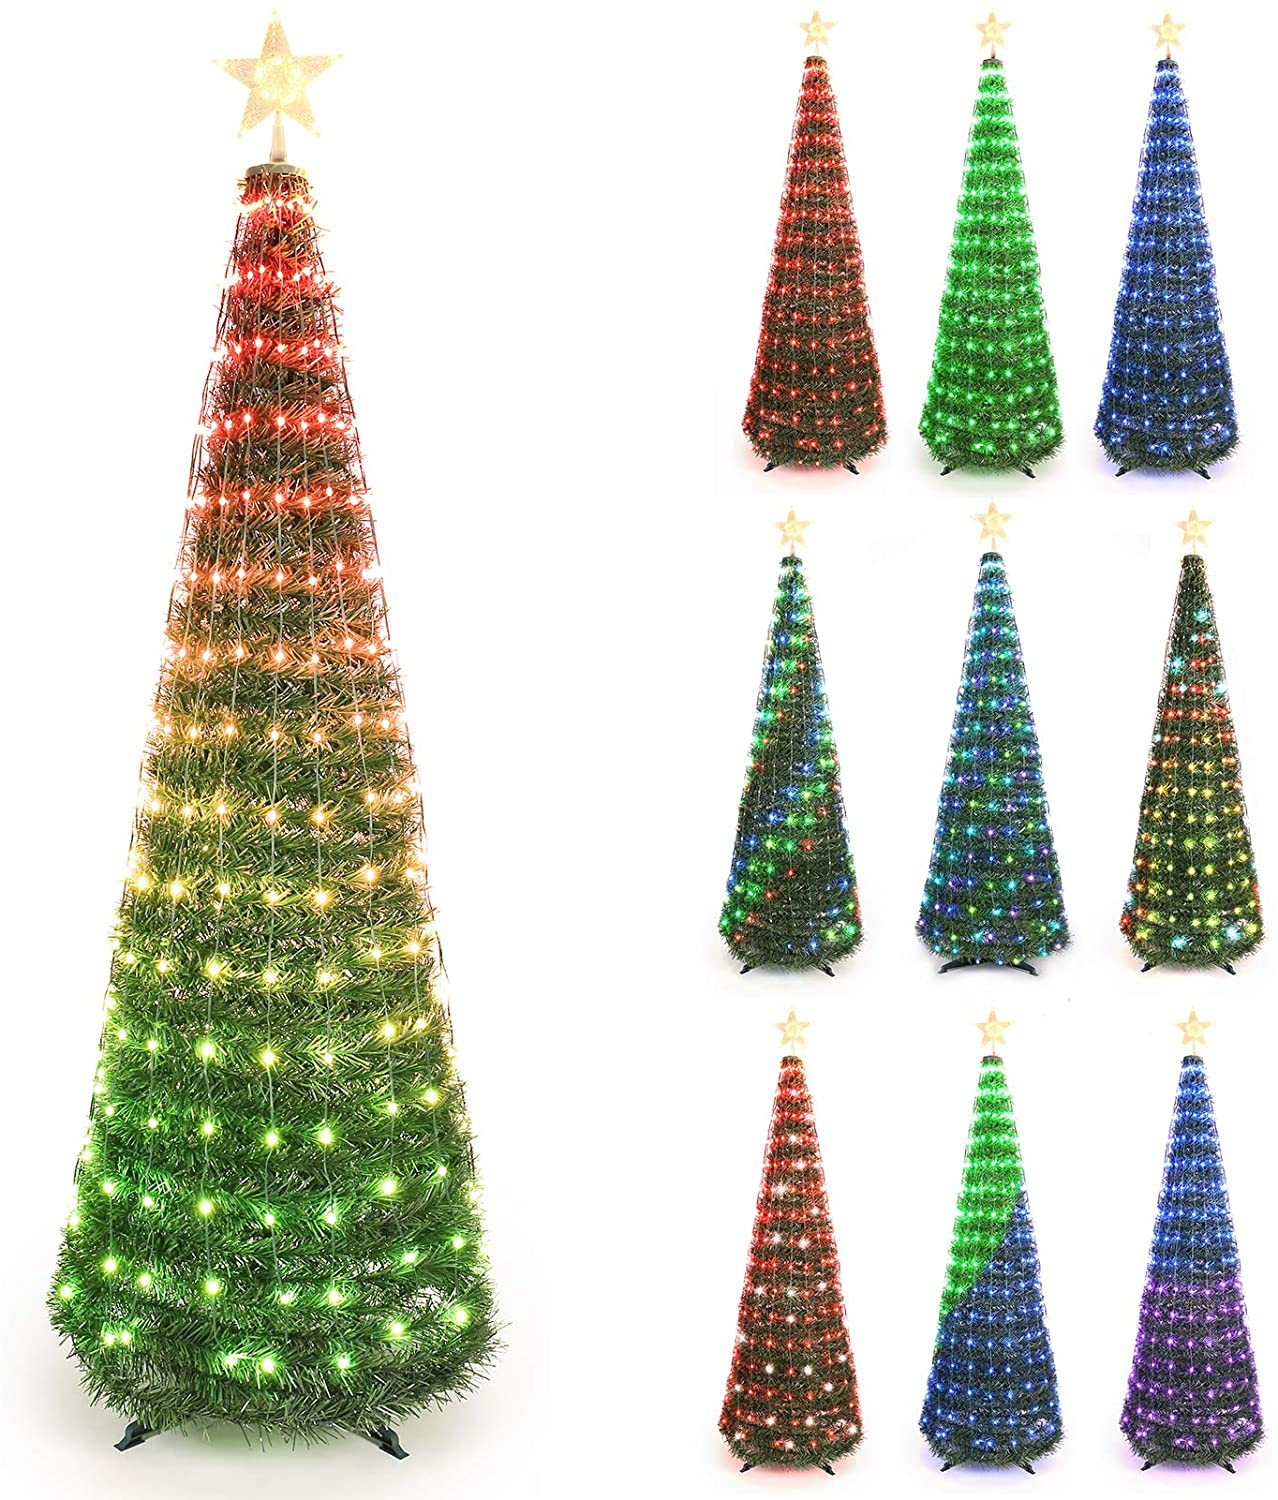 Brizled Christmas Tree, 6ft Artificial Prelit Christmas Tree with 304 Color Changing LED Lights & Warm White Tree Star Topper, Green Xmas Tree with Remote for Christmas Home Indoor Decorations